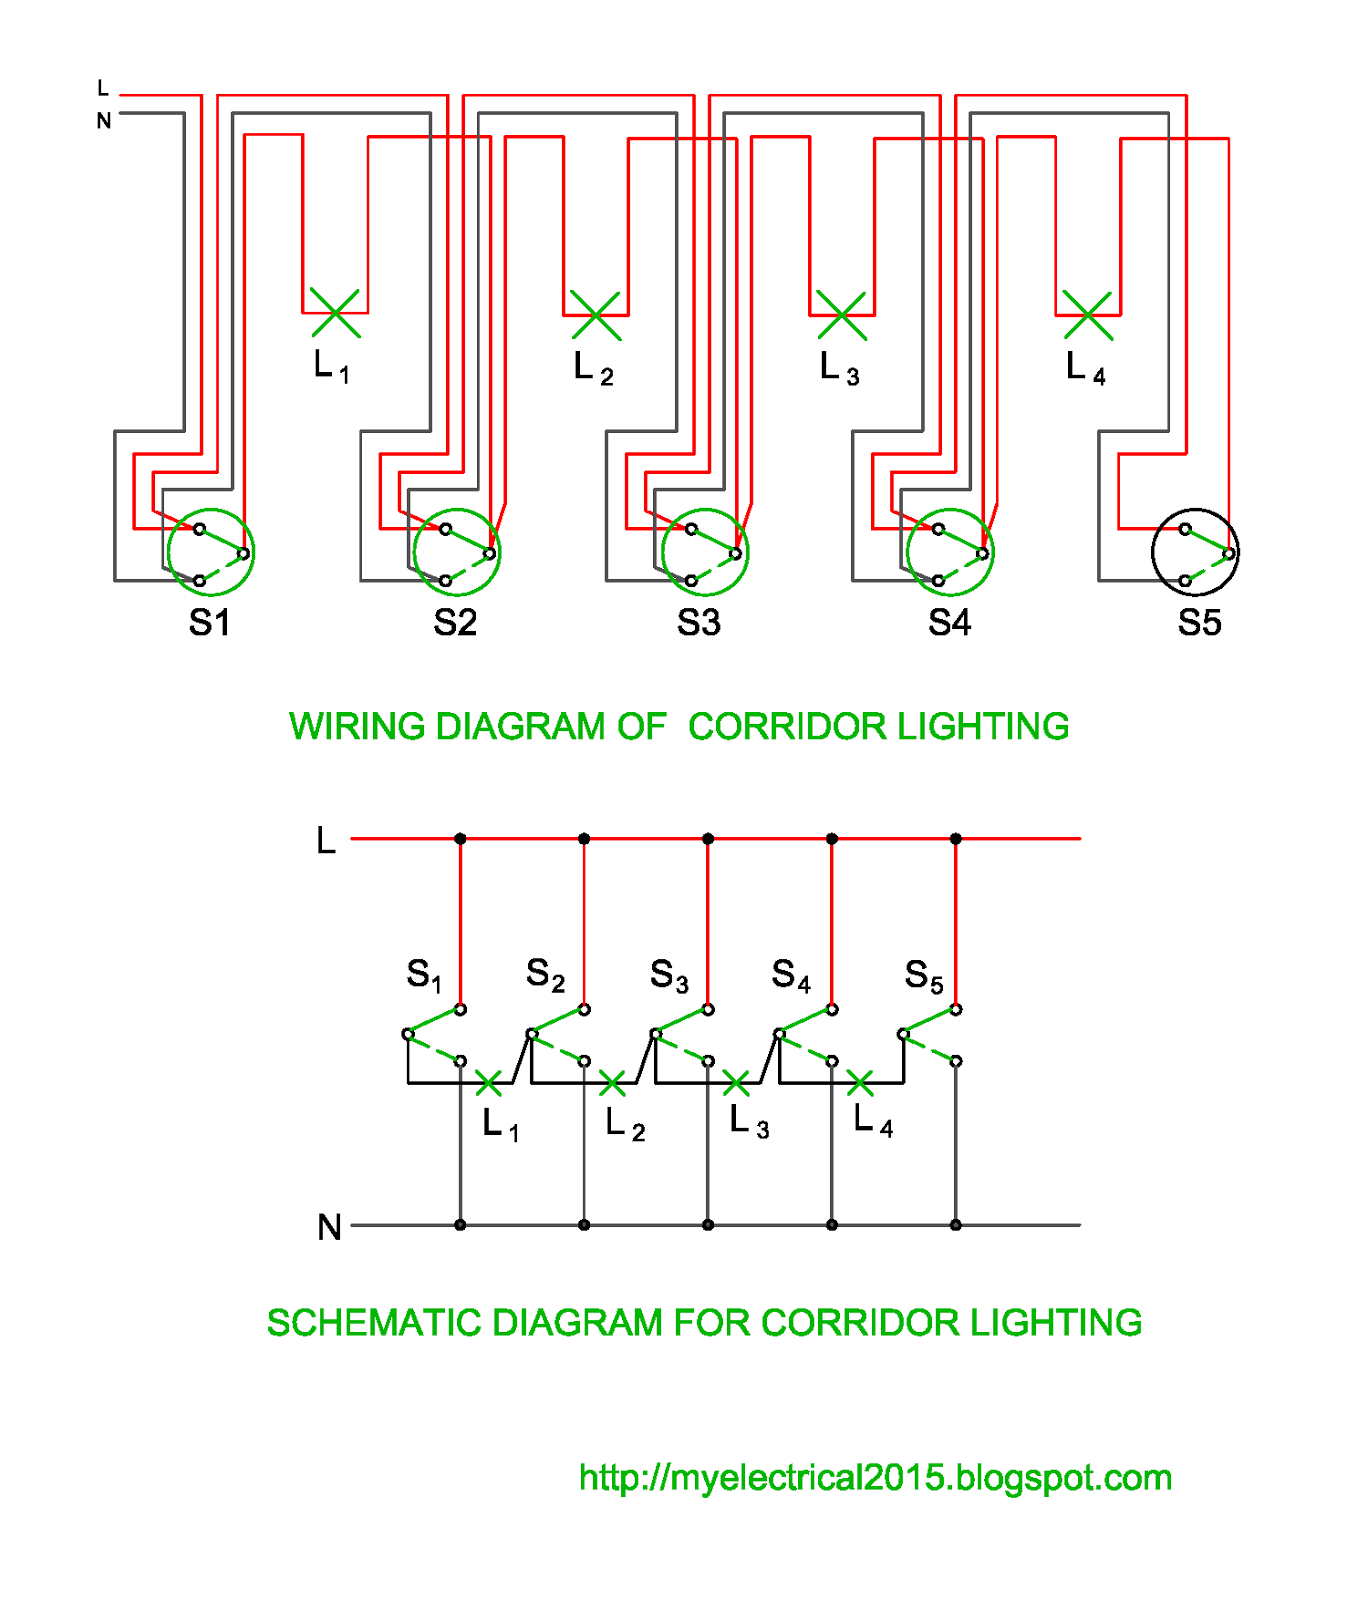 hight resolution of wiring and schematic diagram of corridor lighting